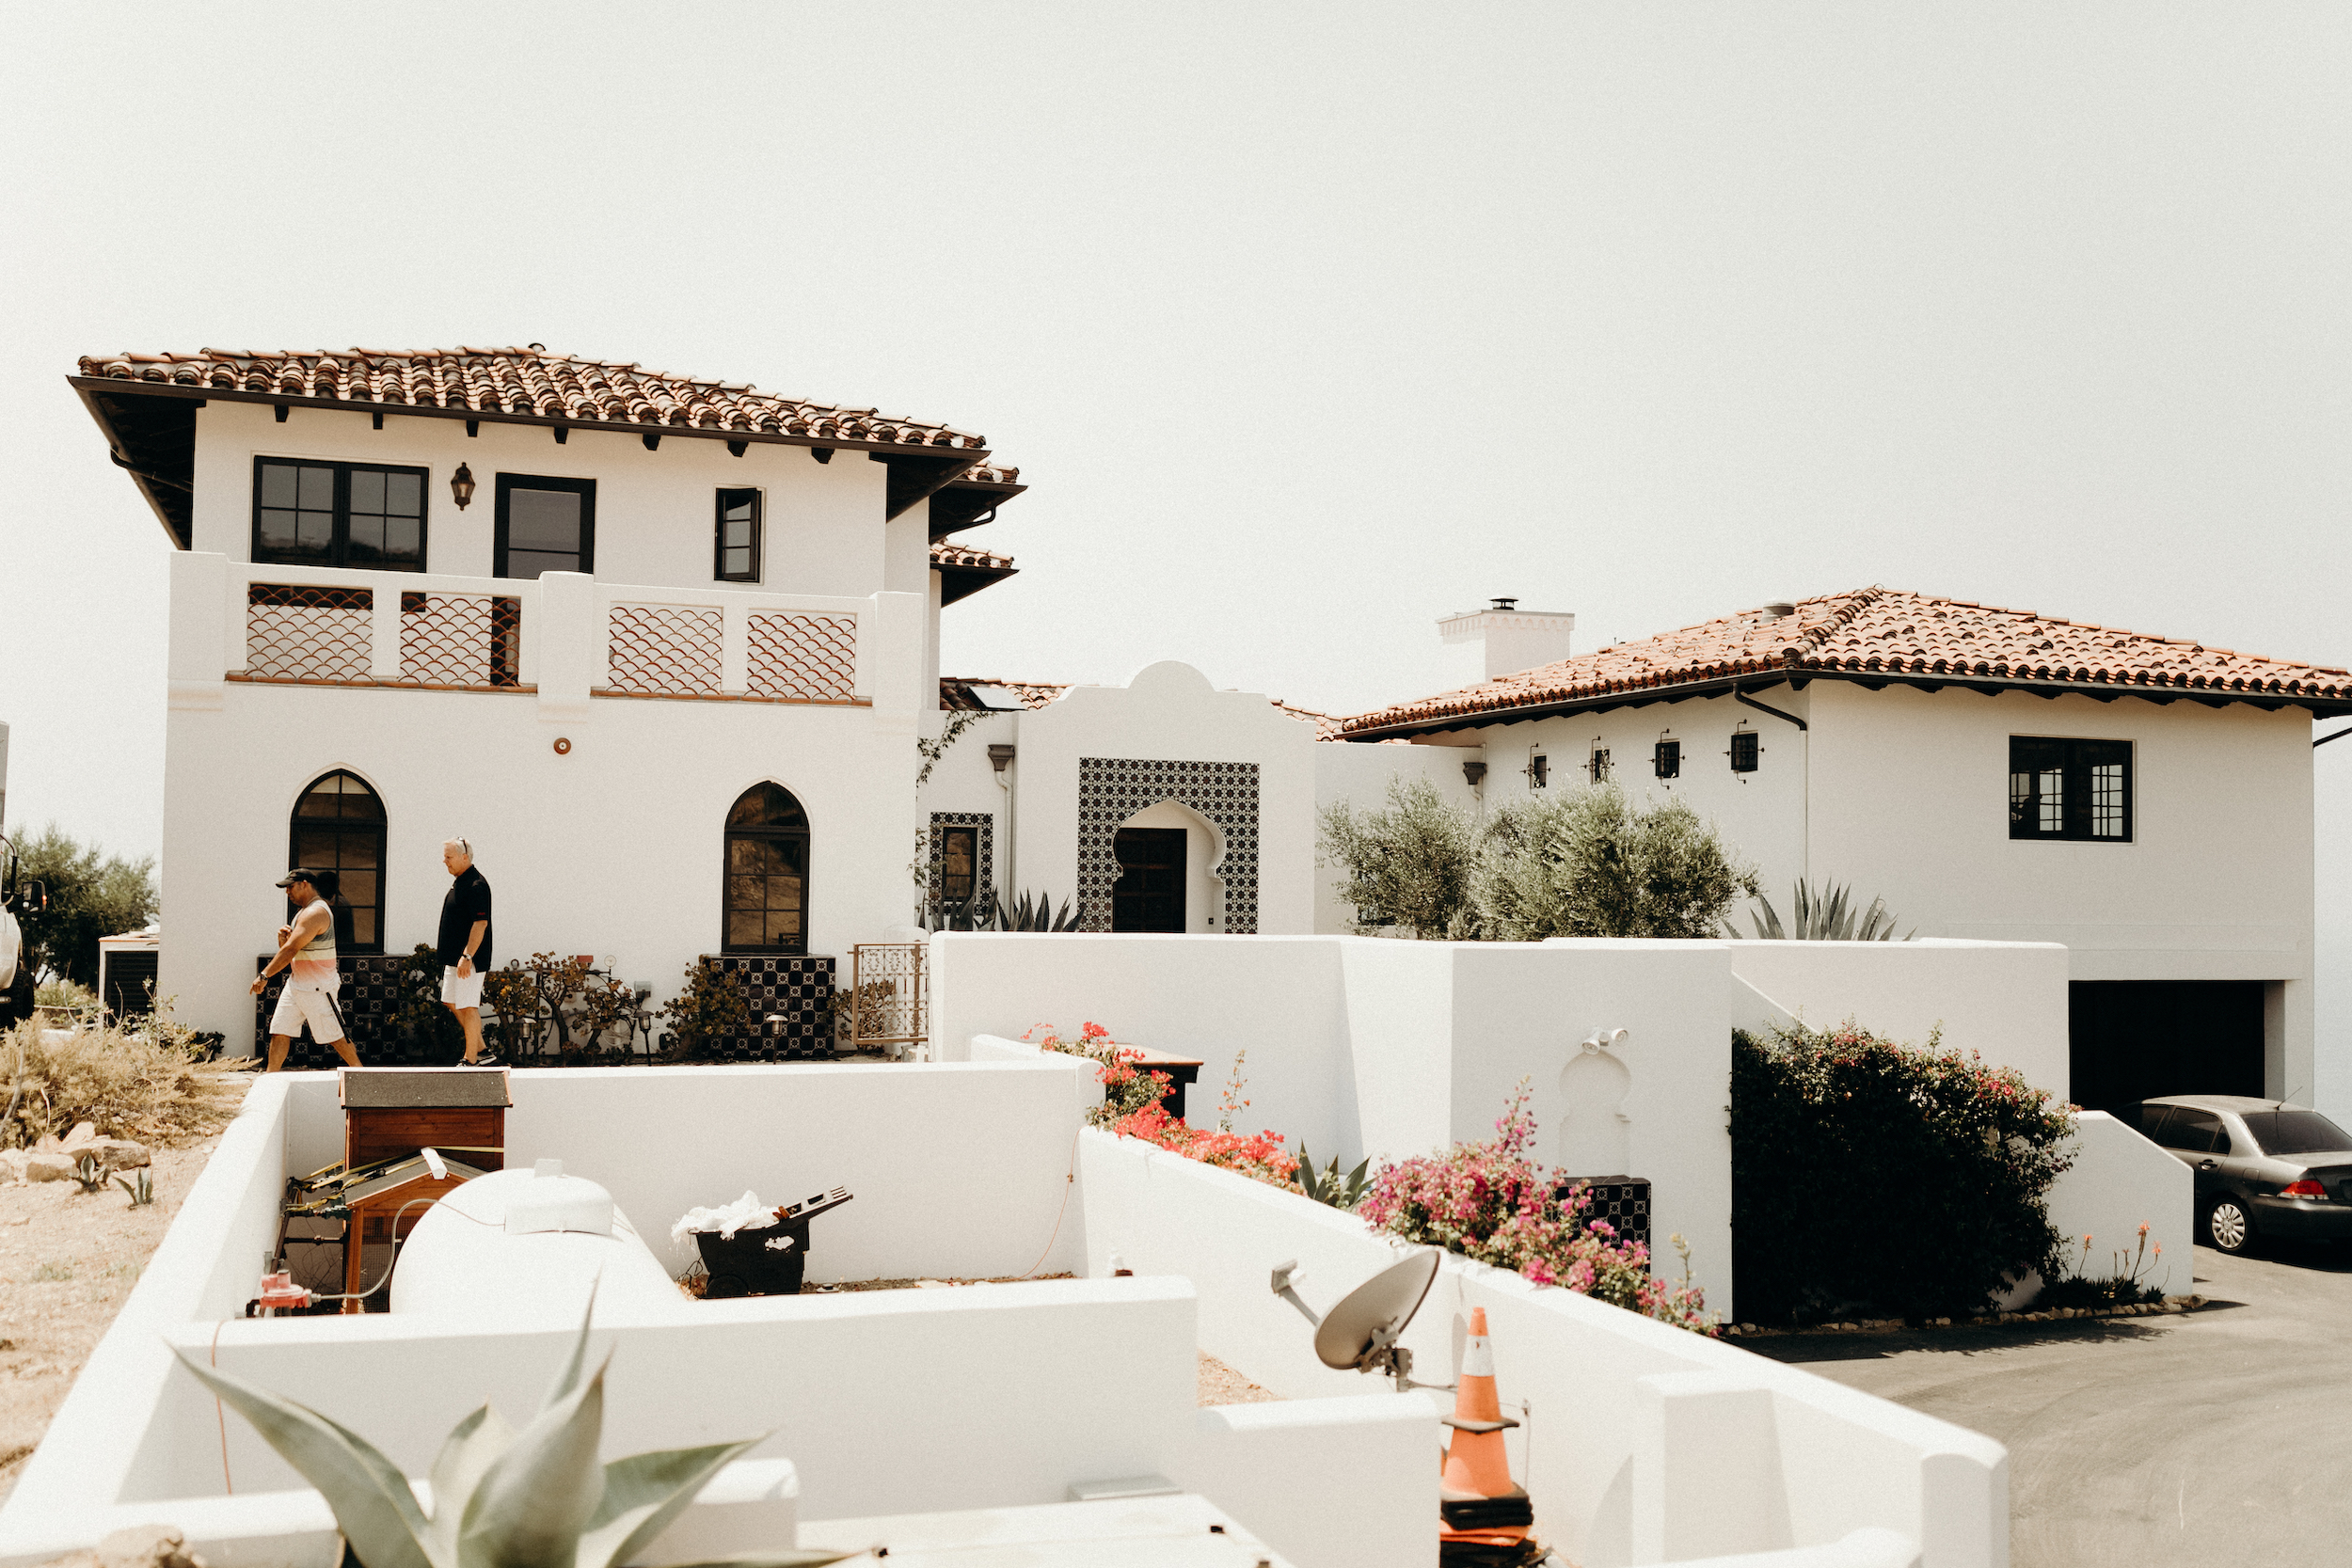 B + M in Malibu California - Victoria Bonvicini Photography-36.jpg